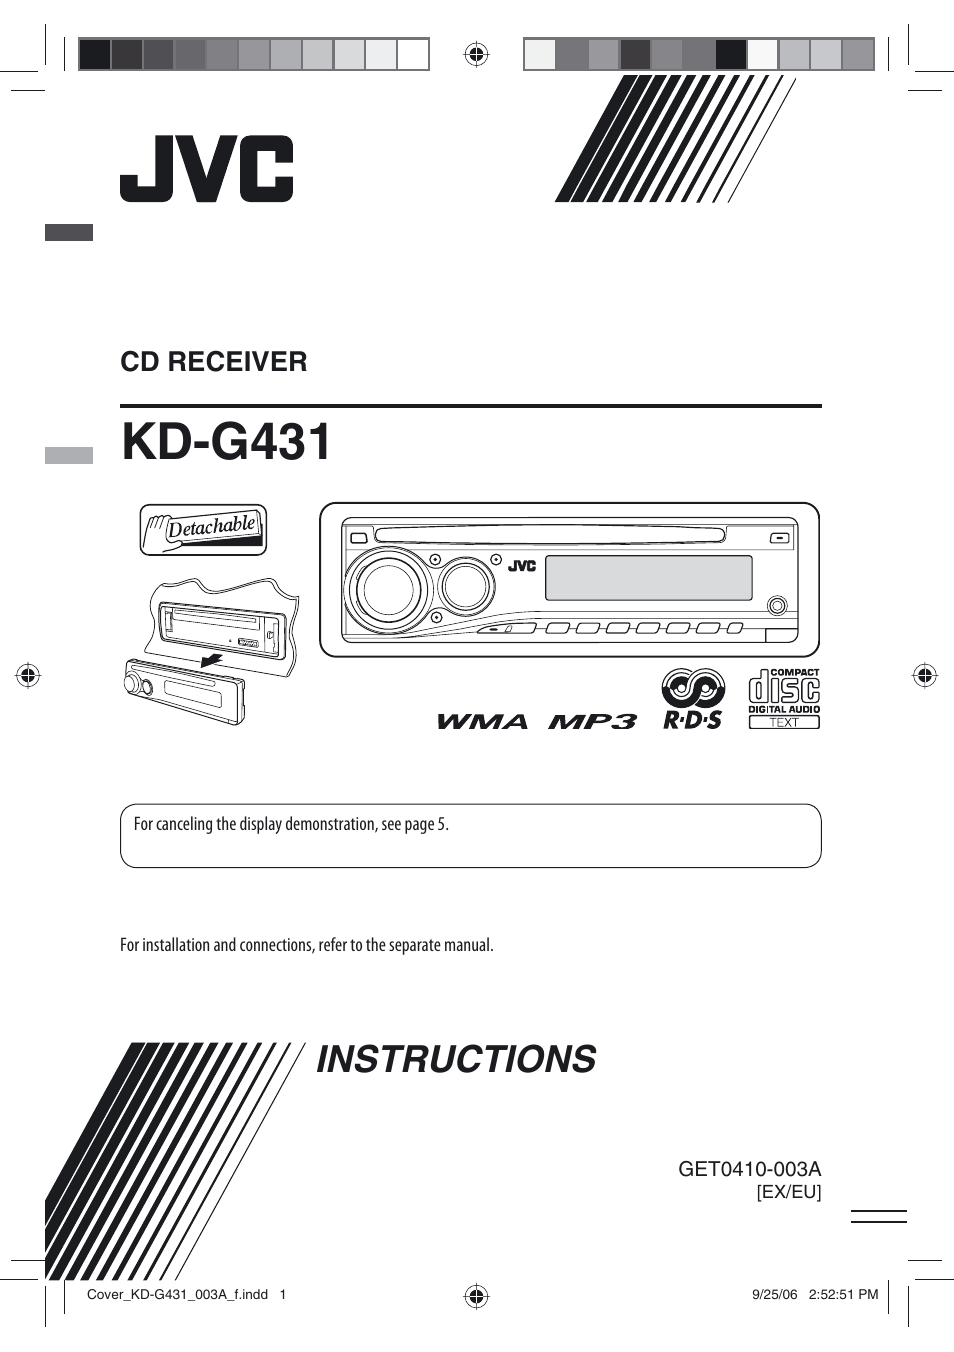 jvc kd g431 page1 jvc kd g431 user manual 28 pages jvc kd g340 wiring diagram at bayanpartner.co